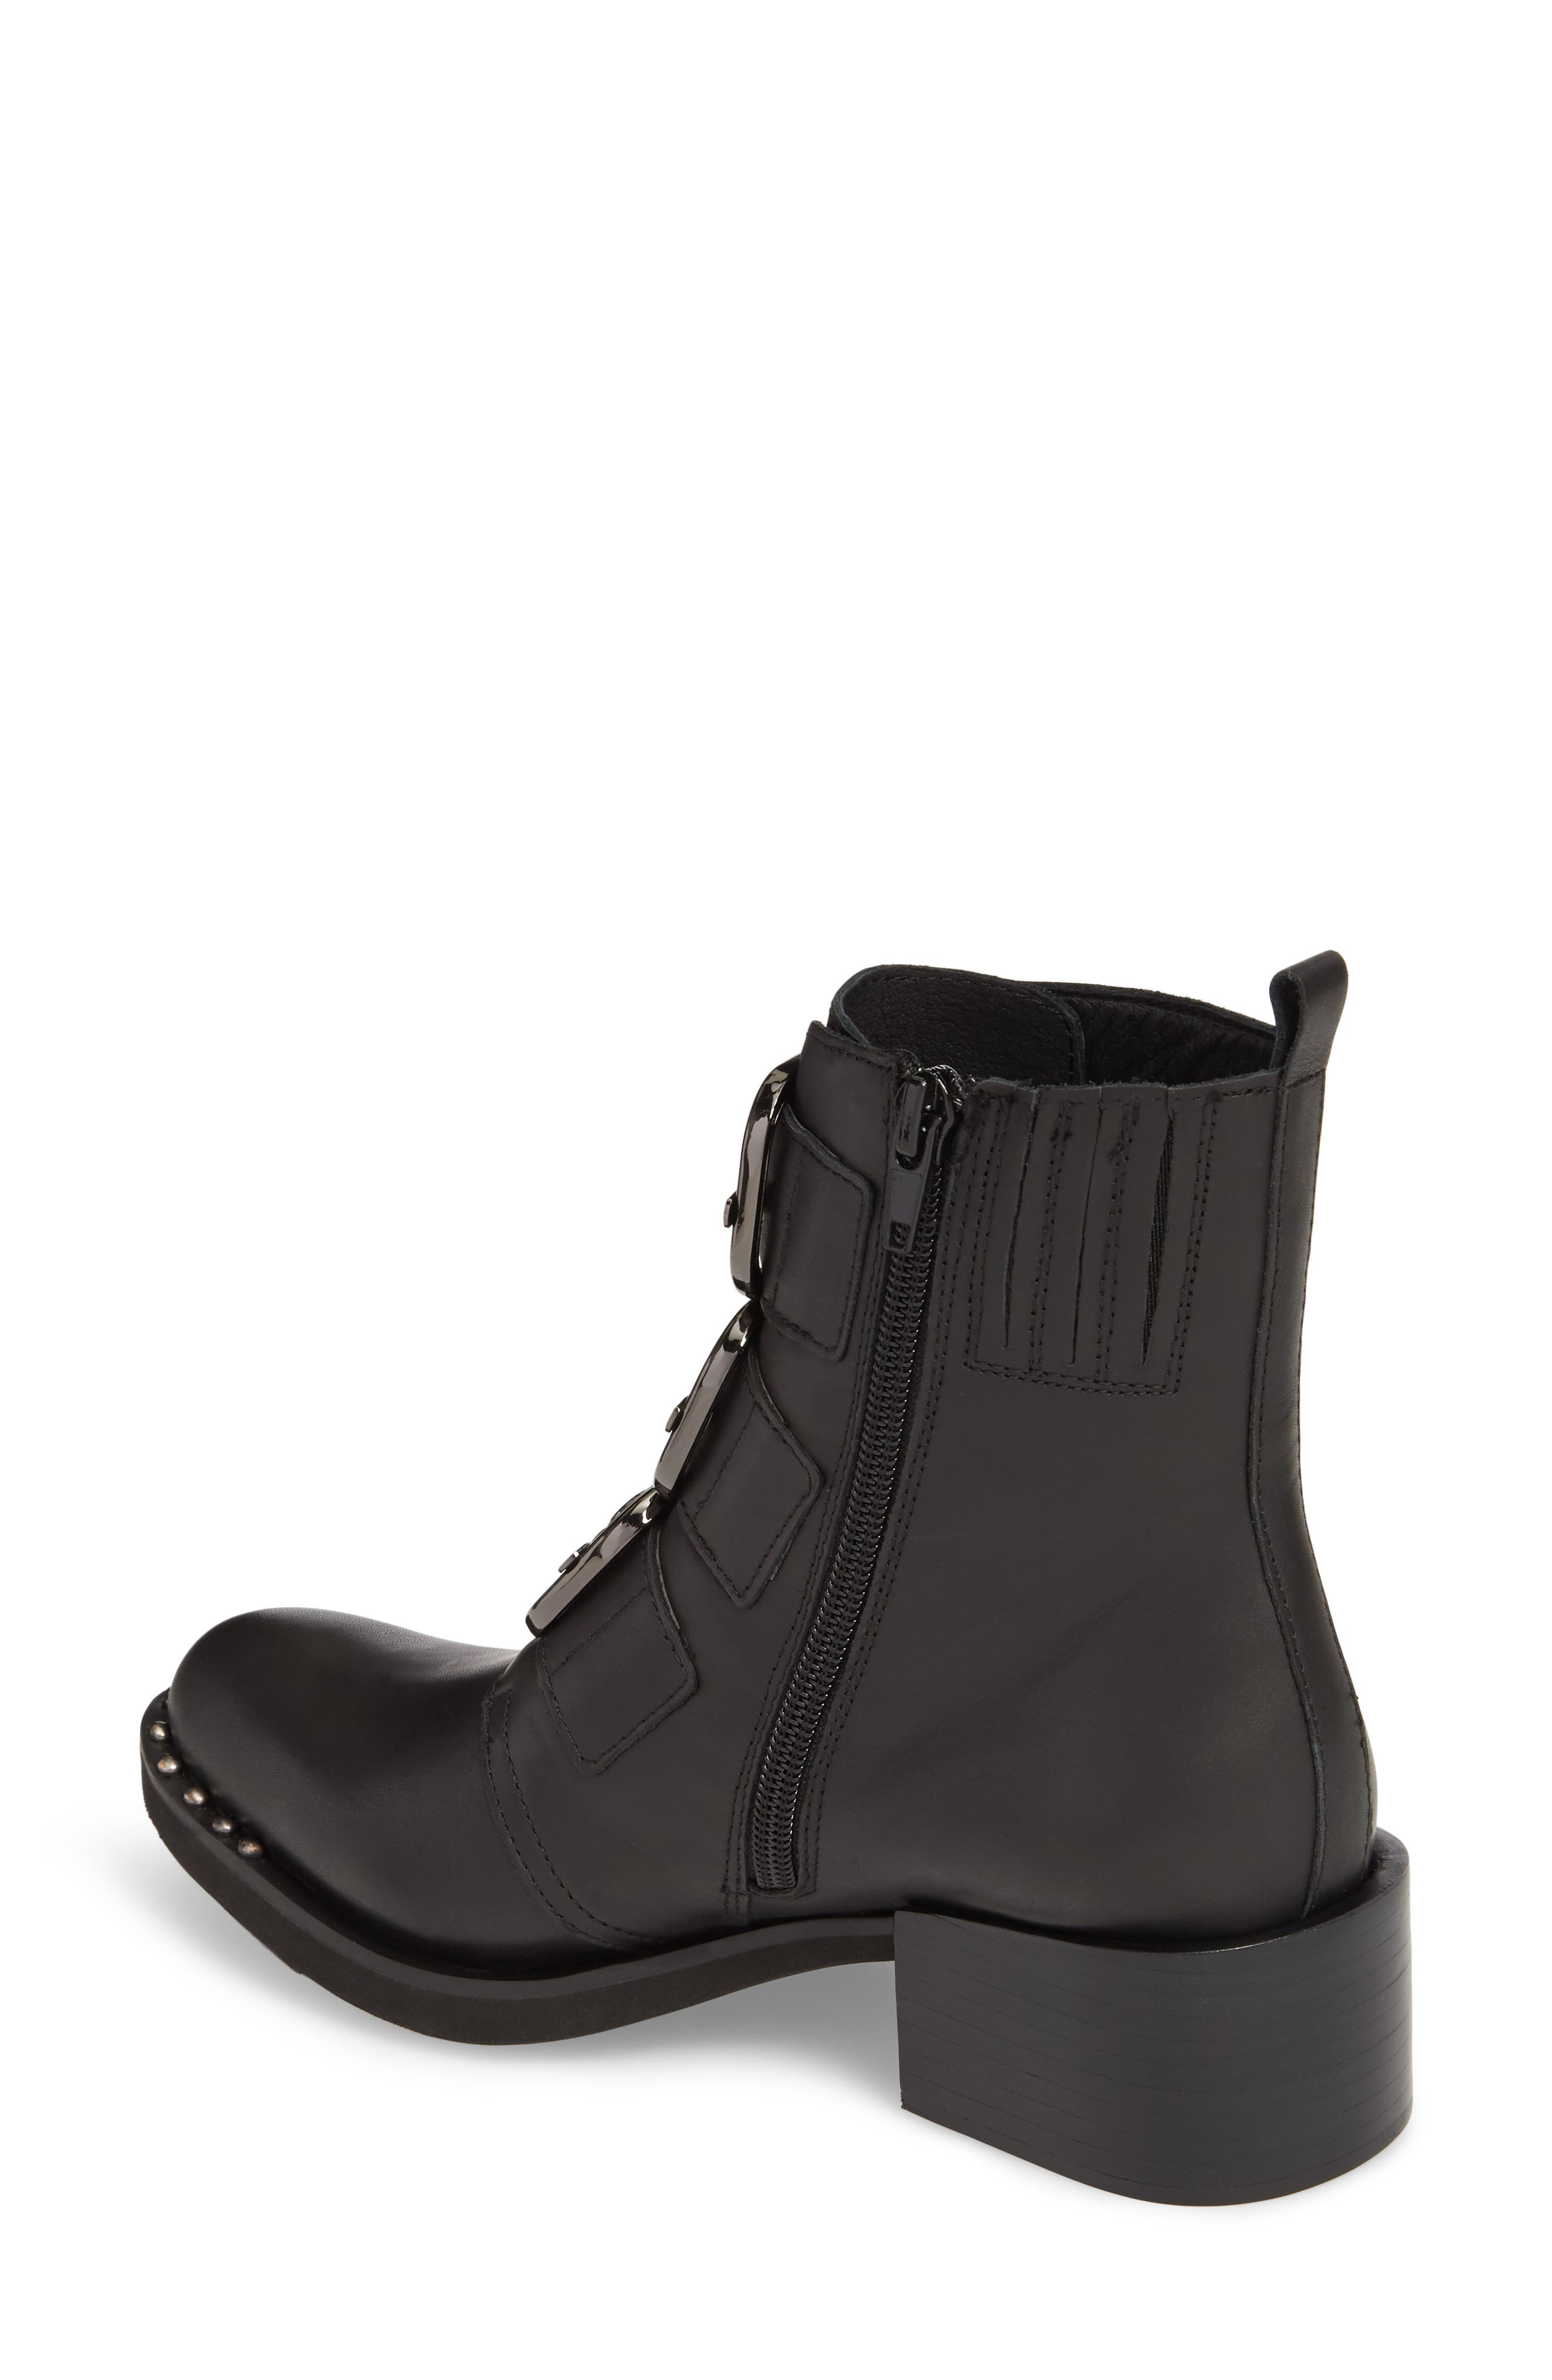 Todd Buckle Strap Bootie,                             Alternate thumbnail 2, color,                             Black